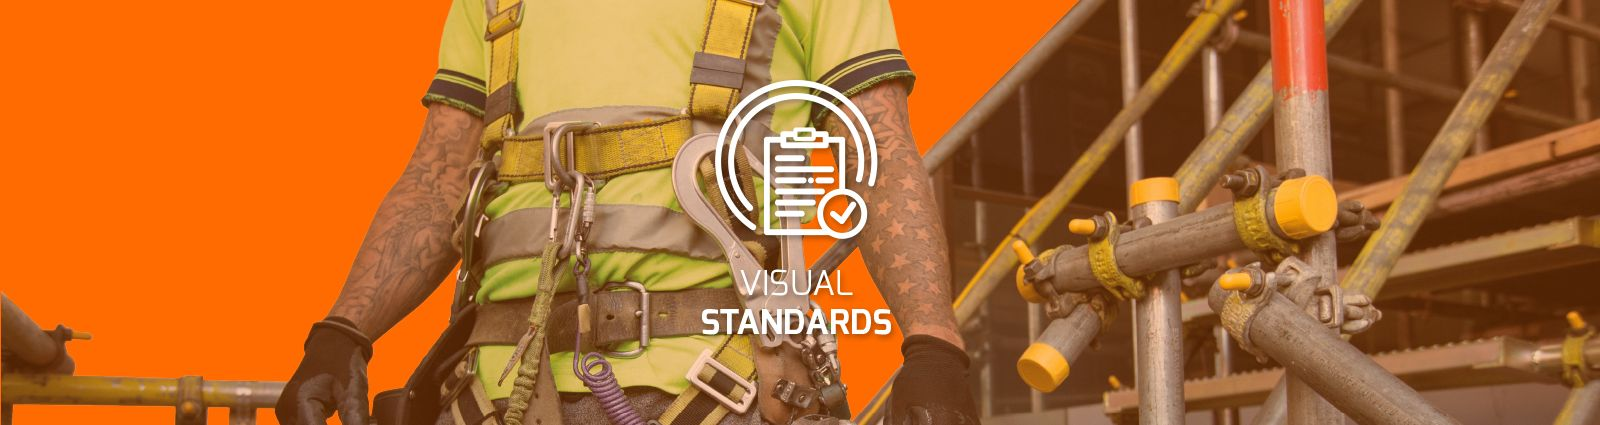 TRAD Scaffolding Visual Standards